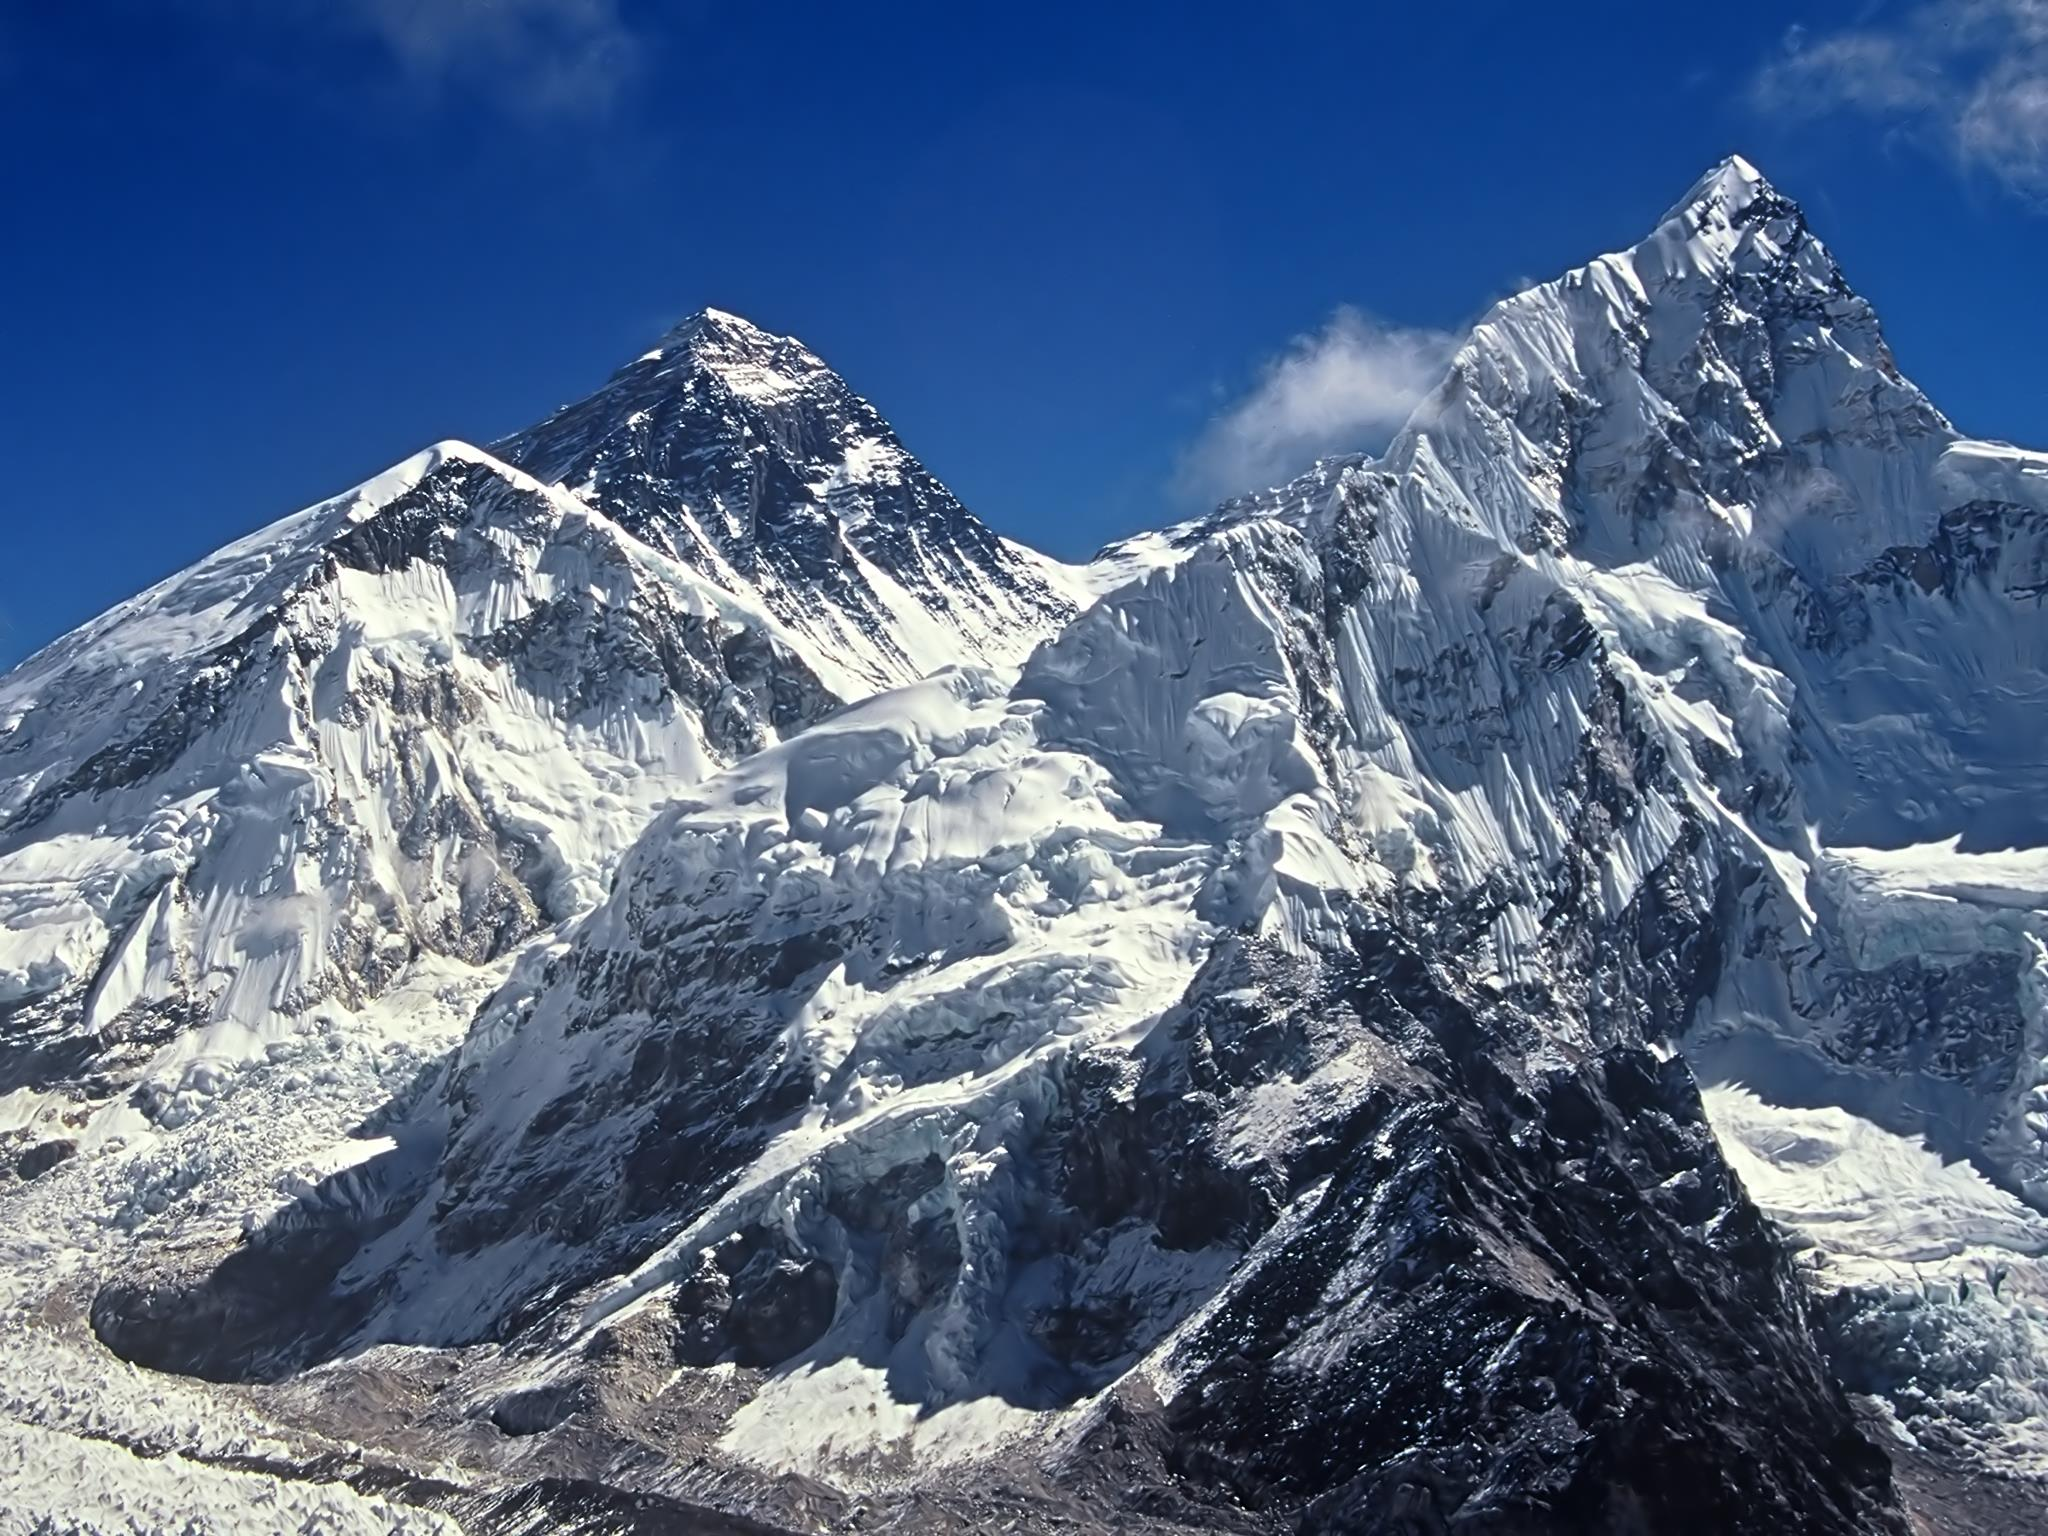 on this Nepal holiday you can view Mt. Everest and the surrounding mountains against a bright blue sky